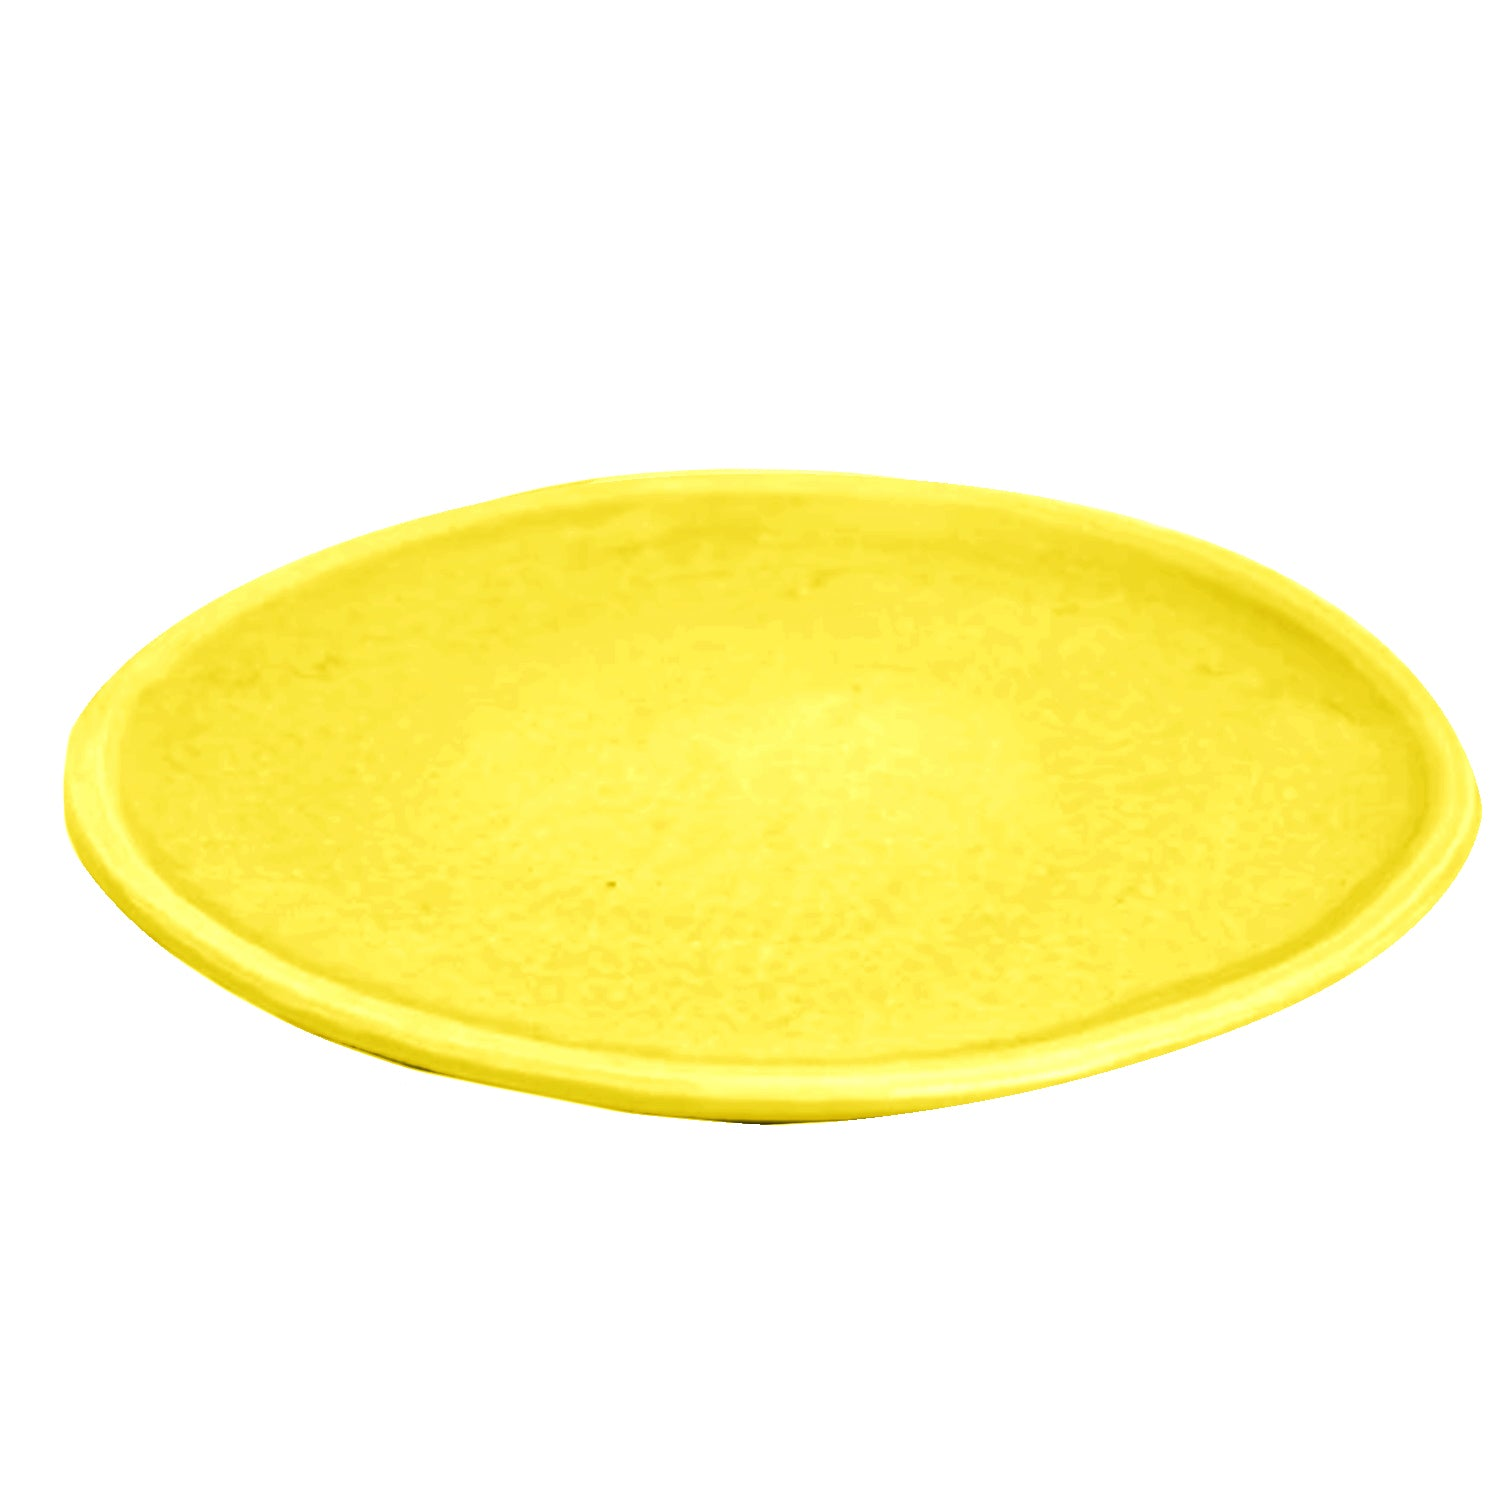 Peasant Plate Small Yellow